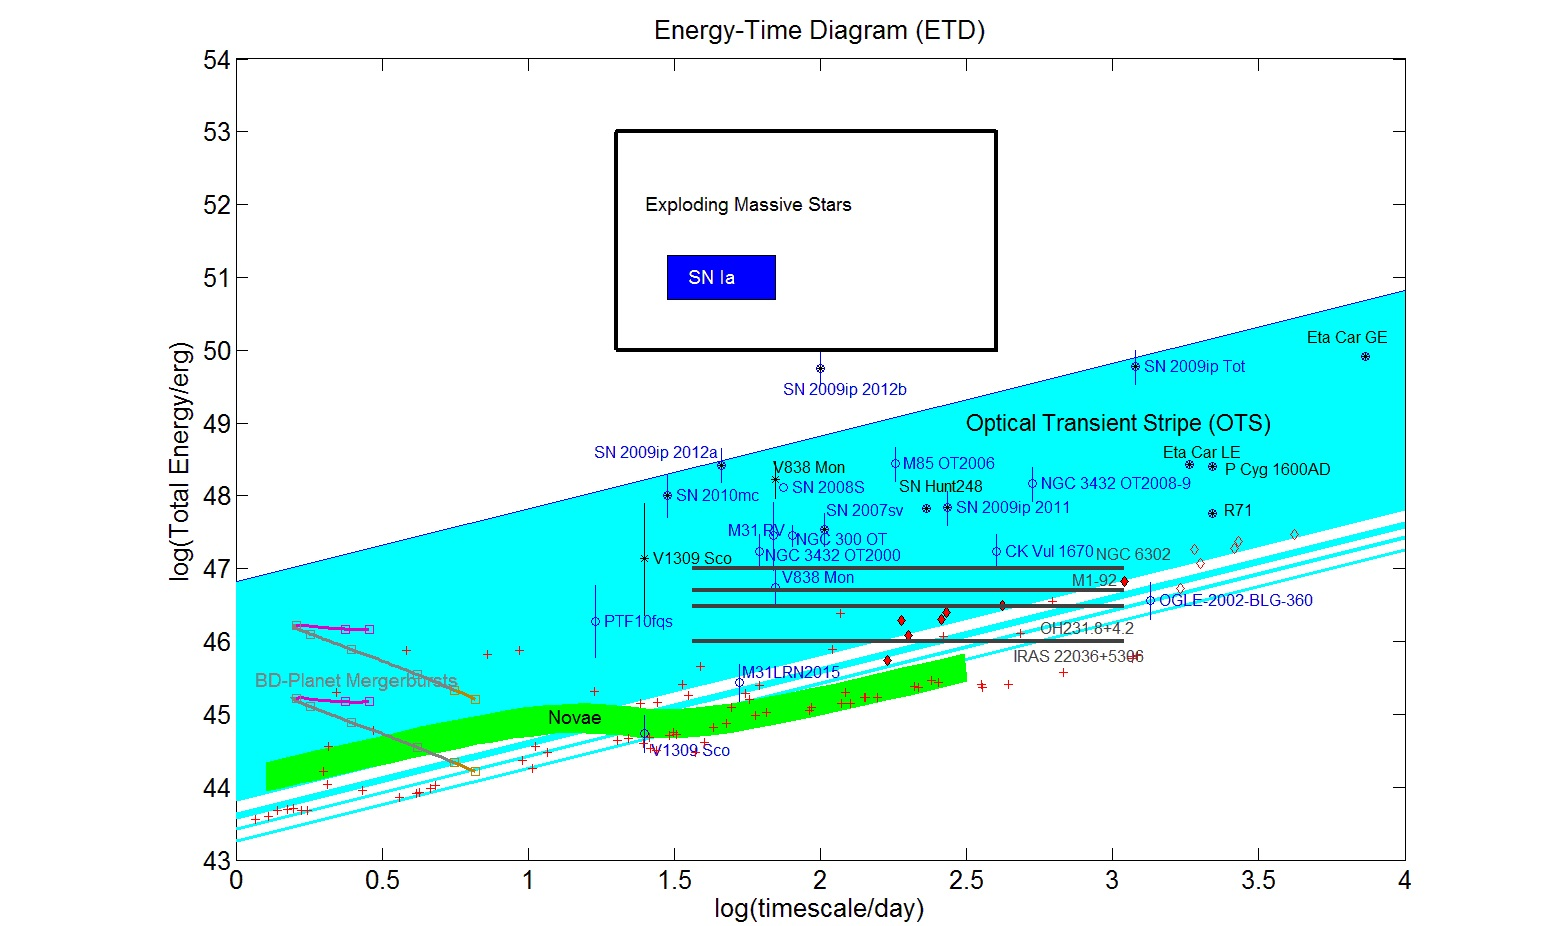 The distribution of erupting objects called ILOTs in the Energy-Time Diagram